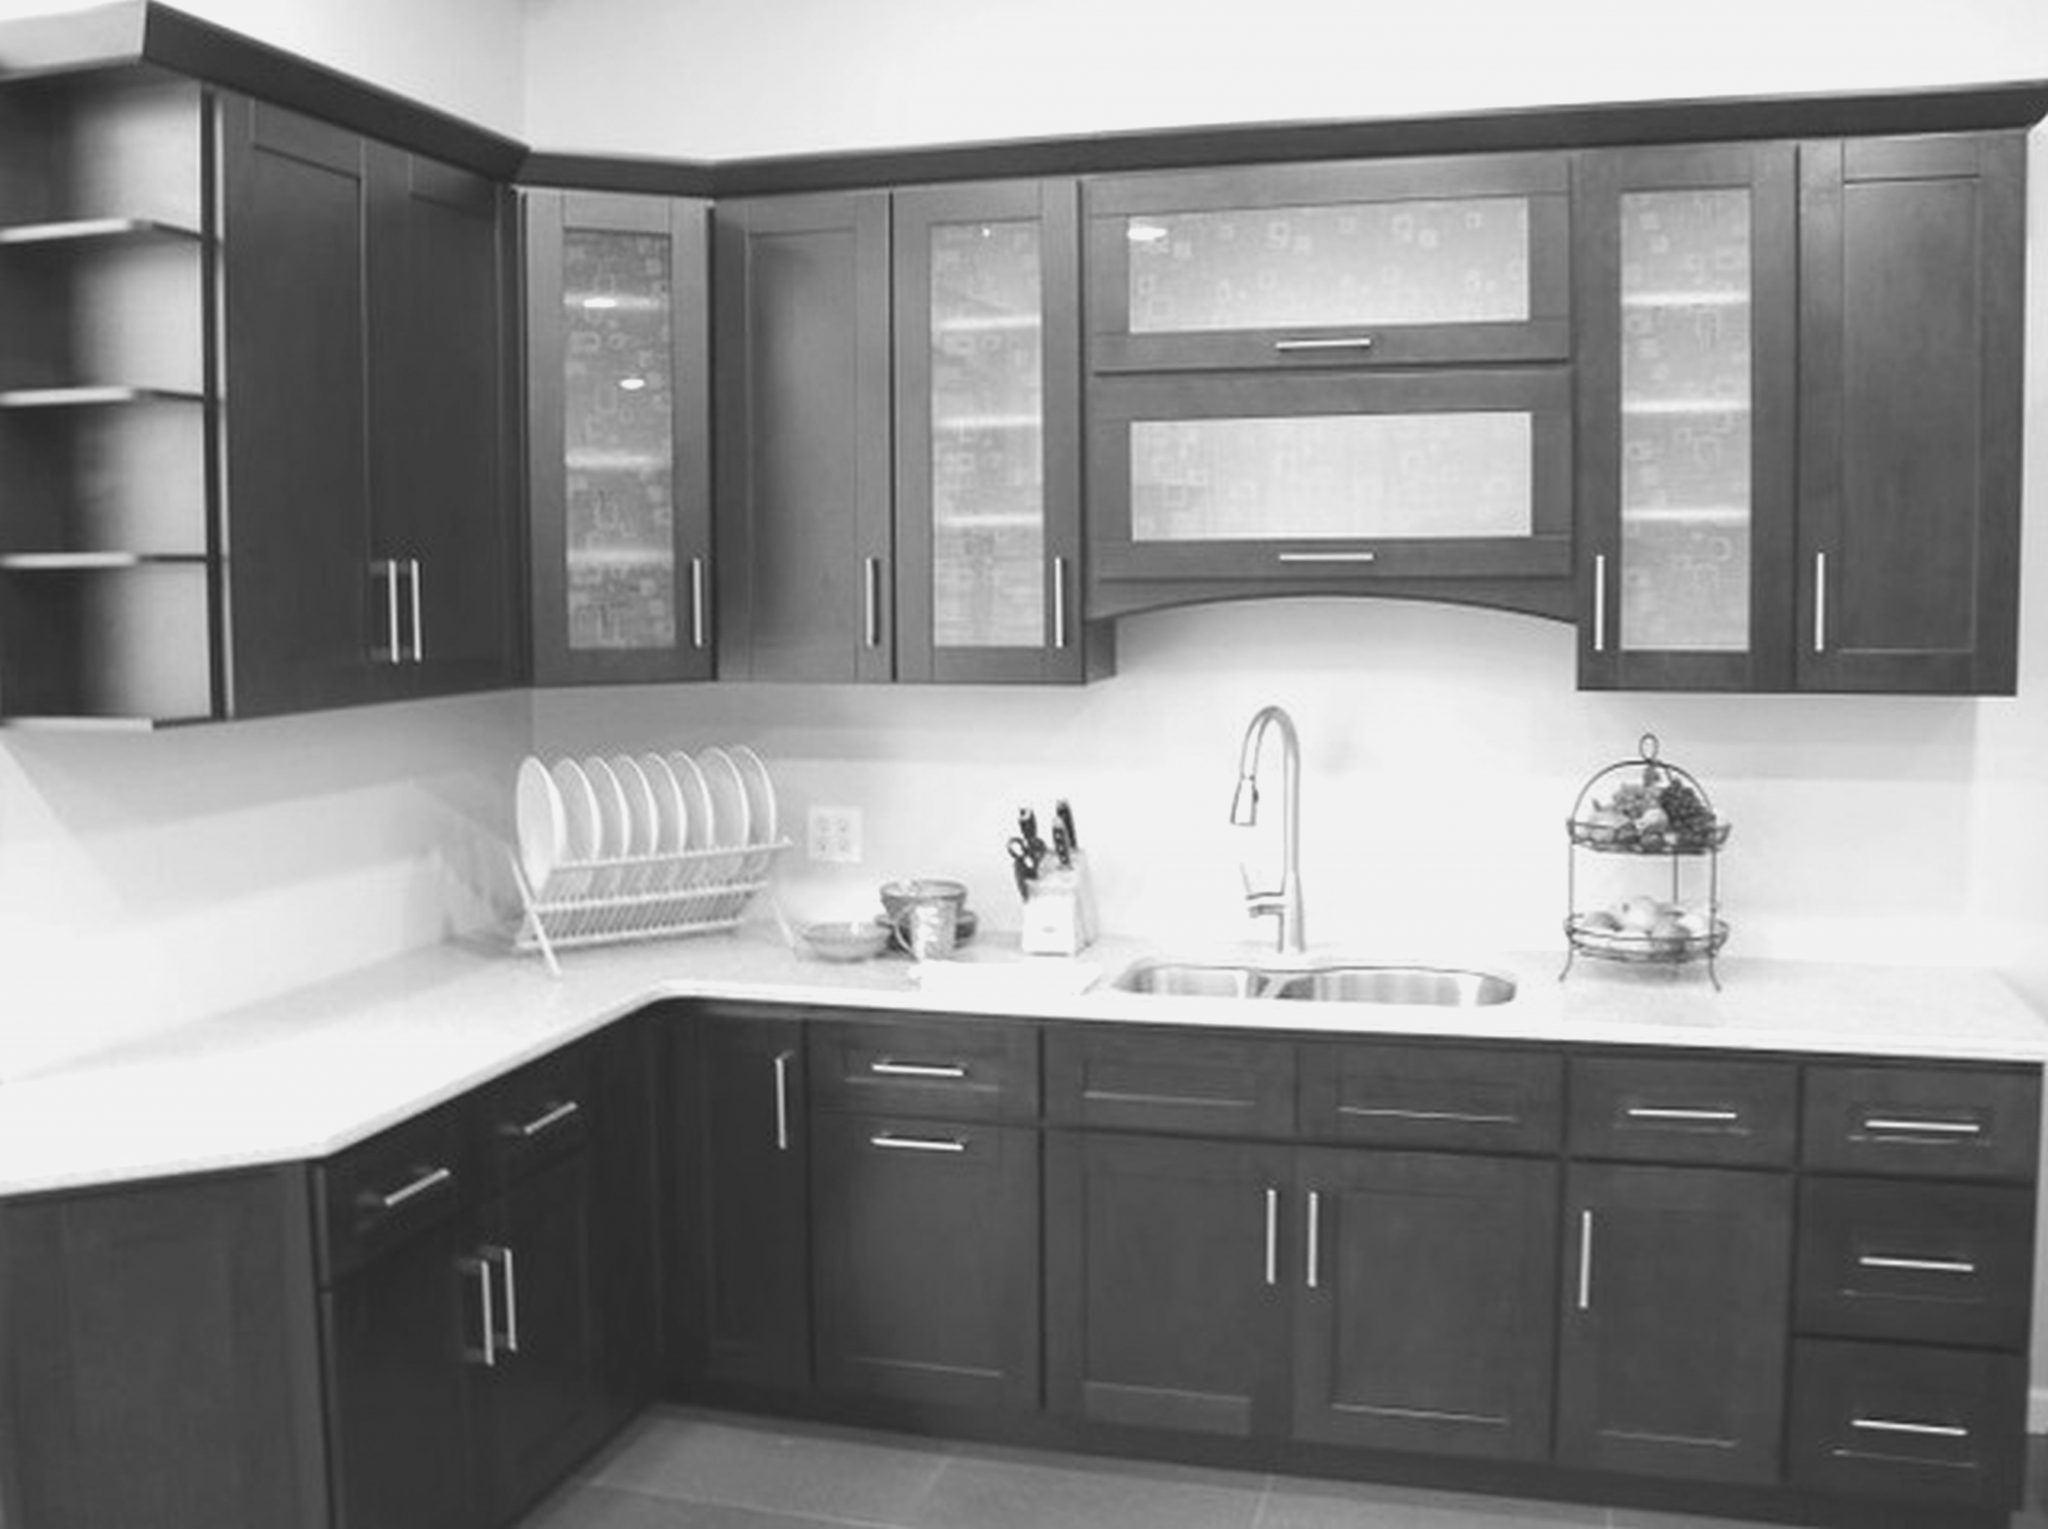 Beautiful Frosted Glass Kitchen Cabinet Doors Design Ideas If You Re Going To Renovate Your Simple Kitchen Cabinets Simple Kitchen Design Tiny Kitchen Design